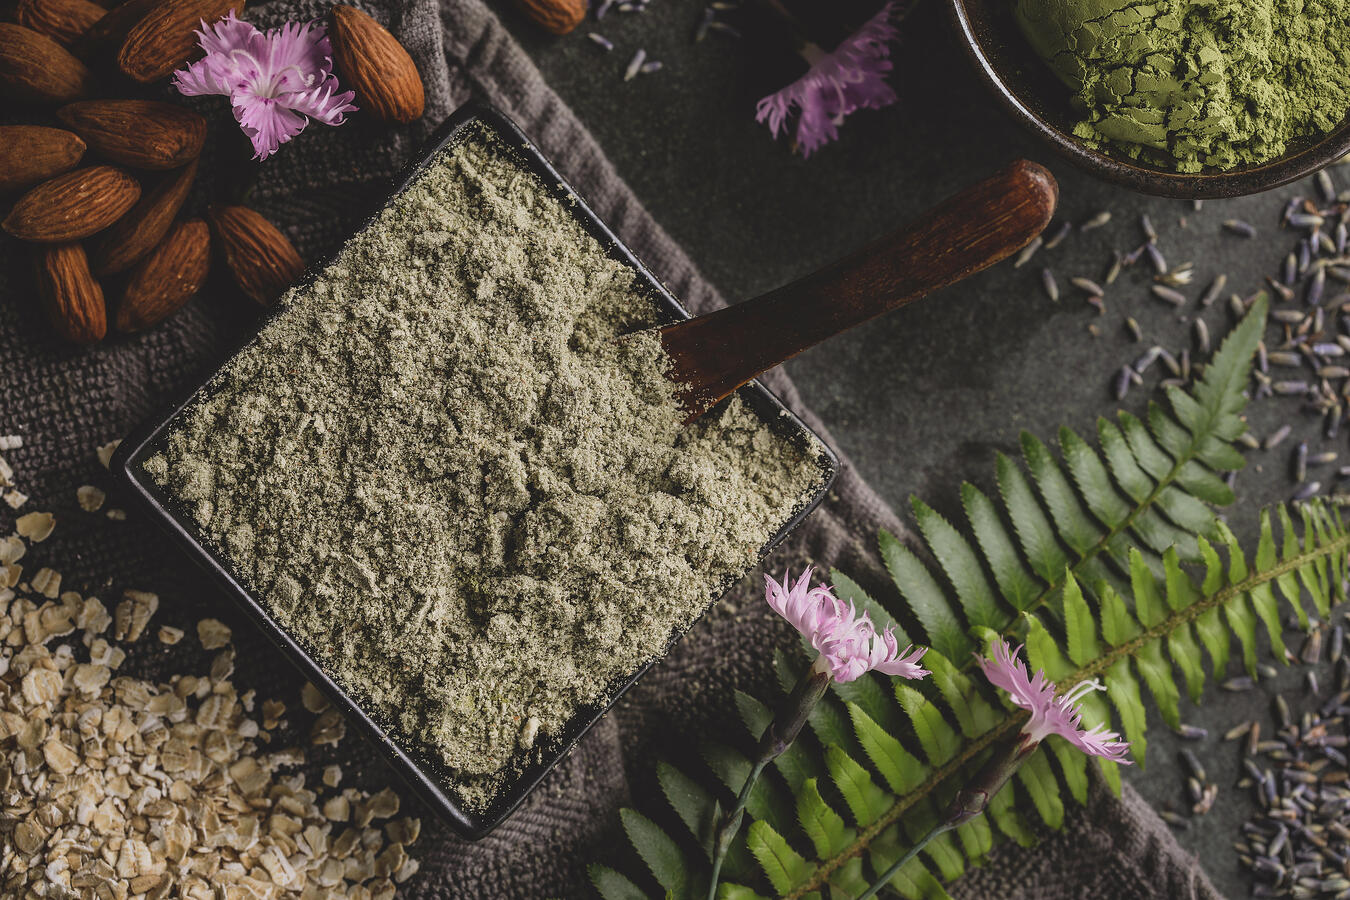 Matcha and lavender cleansing grains surrounded by almonds, oatmeal and lush ferns.